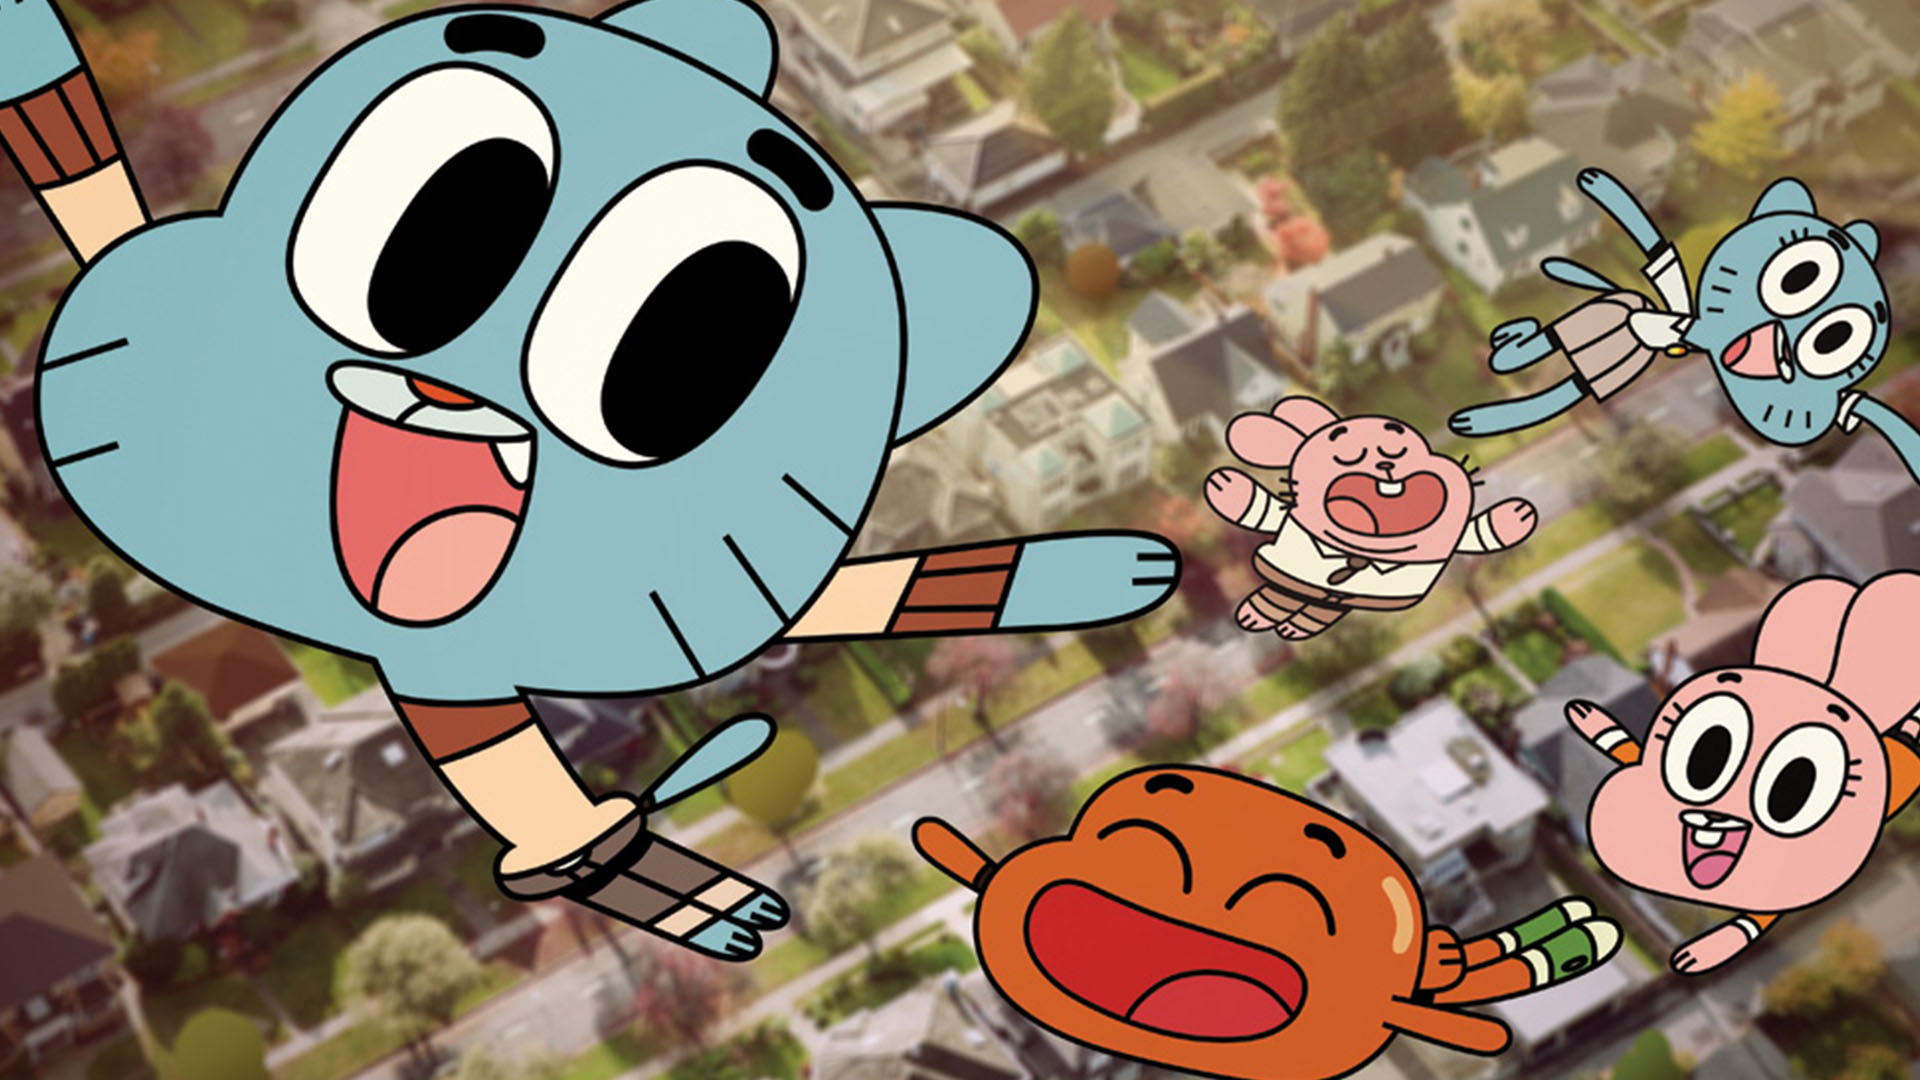 Amazing World of Gumball Competition terms and conditions image